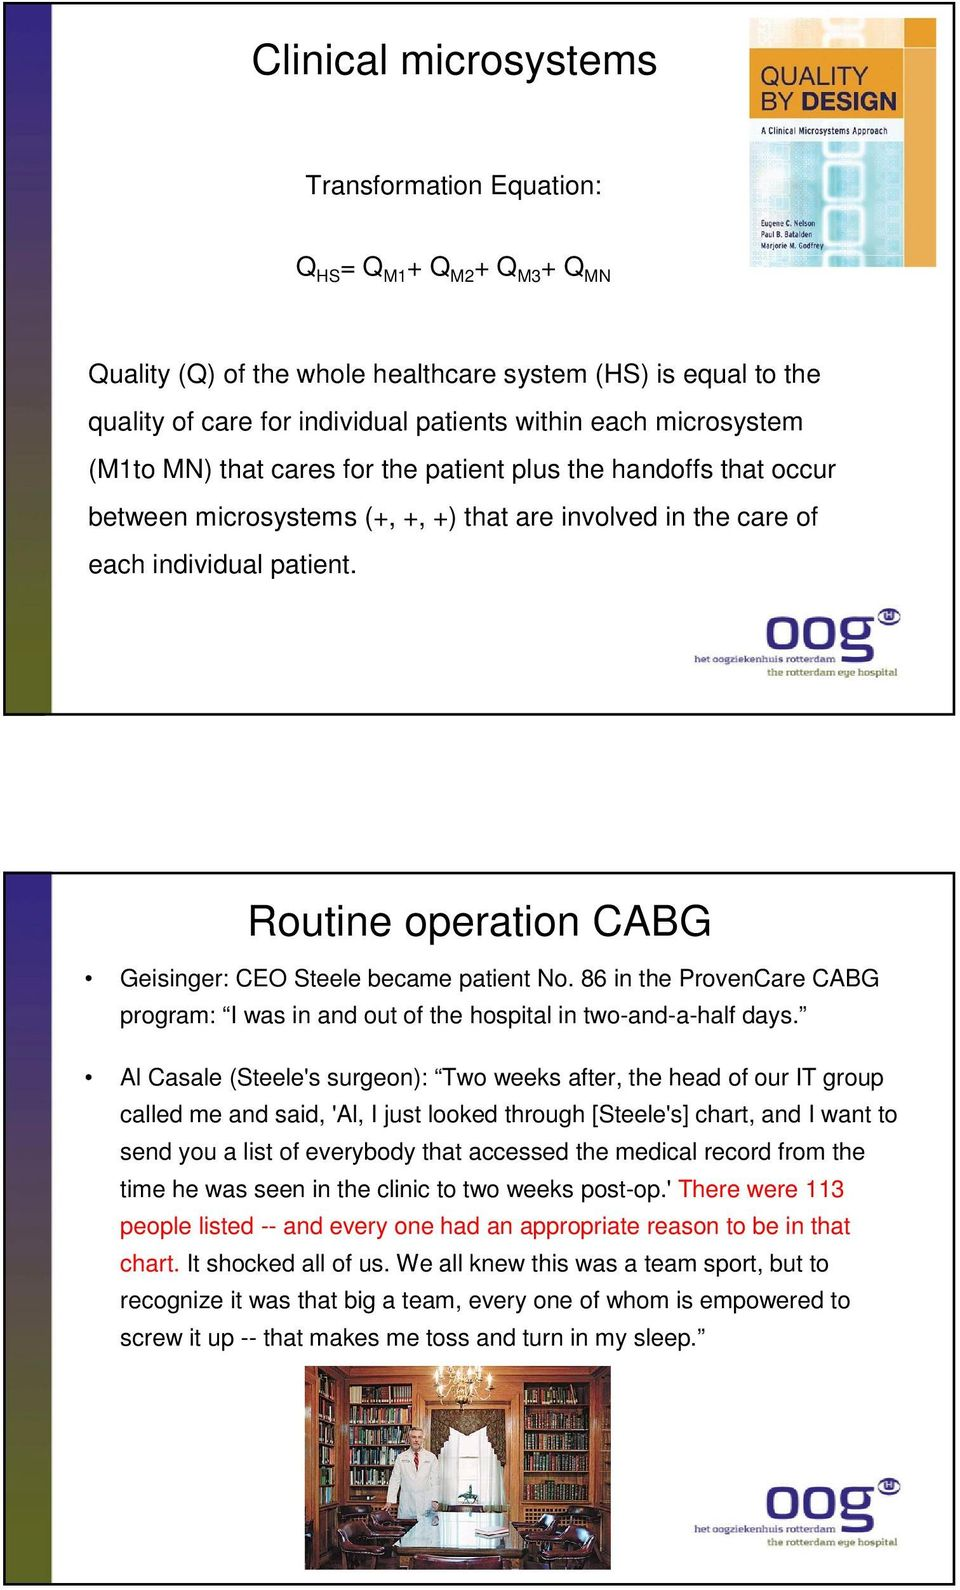 Routine operation CABG Geisinger: CEO Steele became patient No. 86 in the ProvenCare CABG program: I was in and out of the hospital in two-and-a-half days.